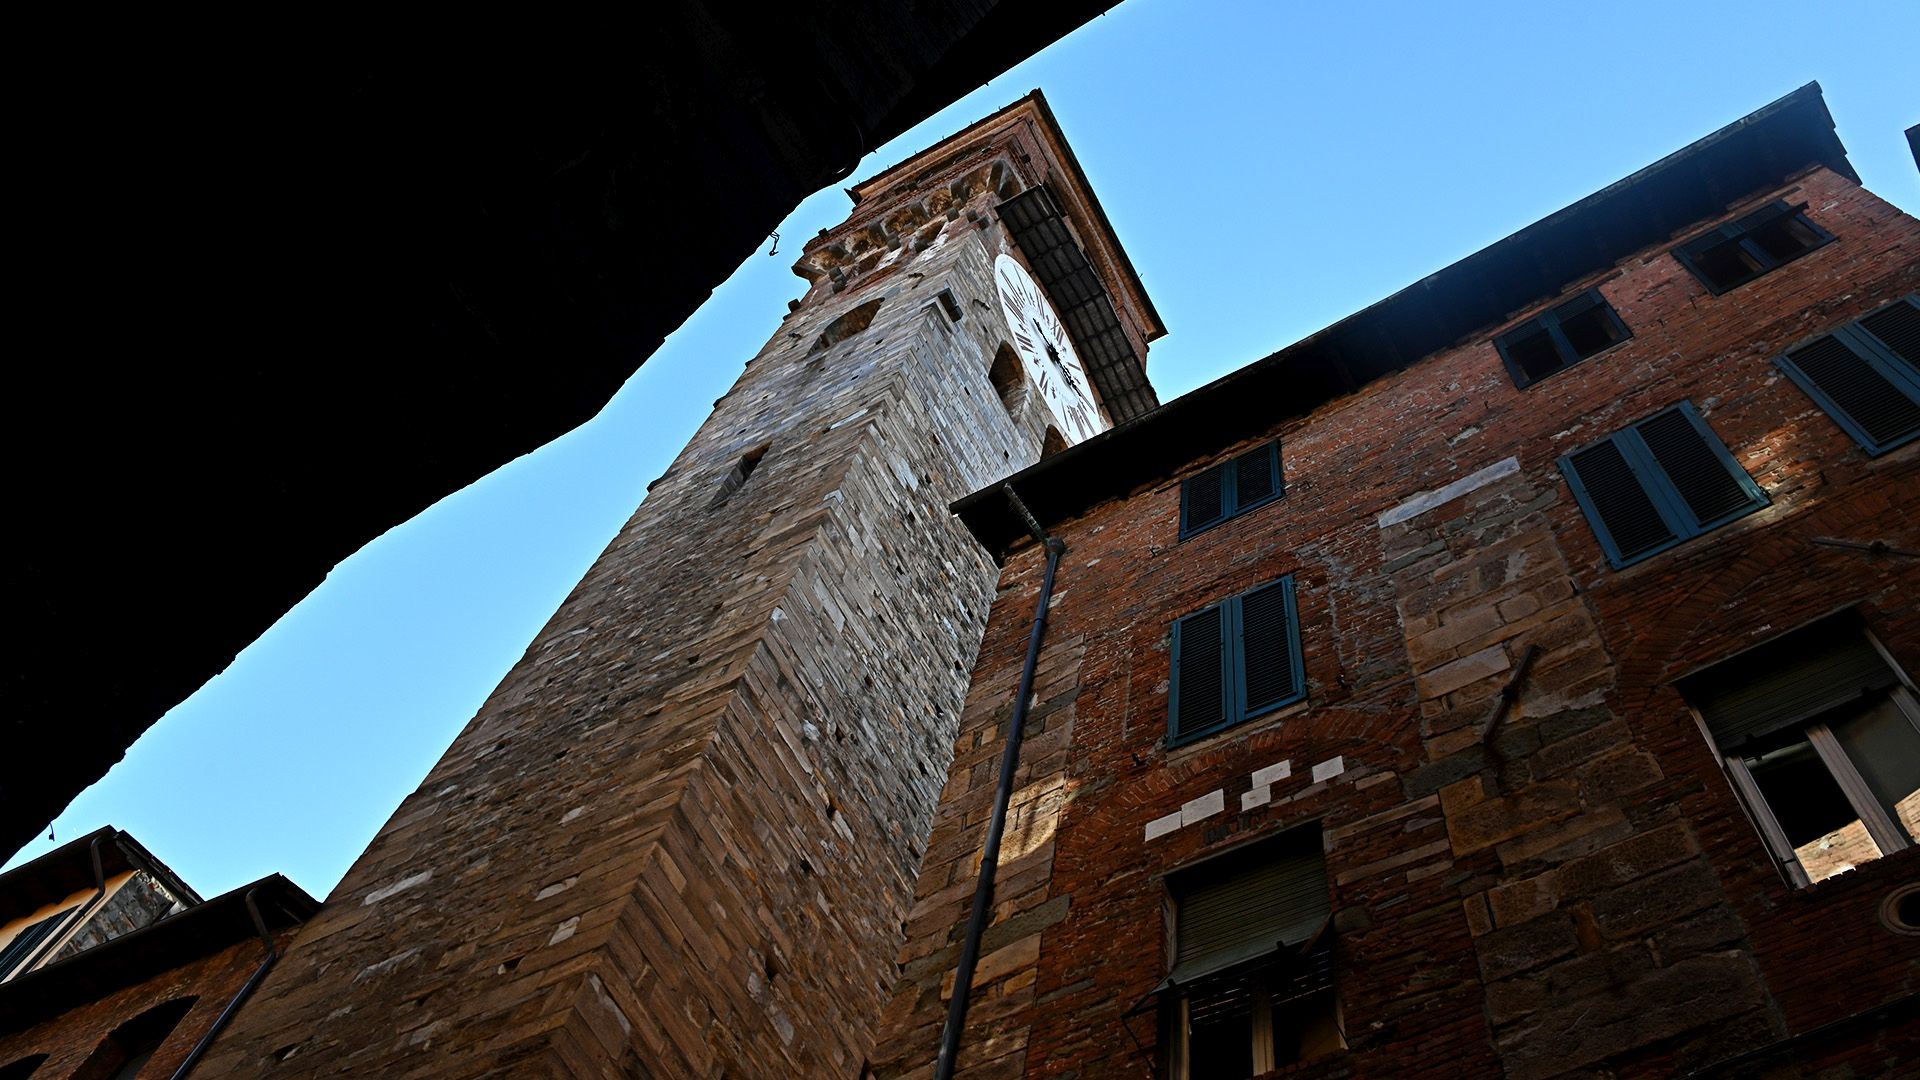 the clocktower in Lucca